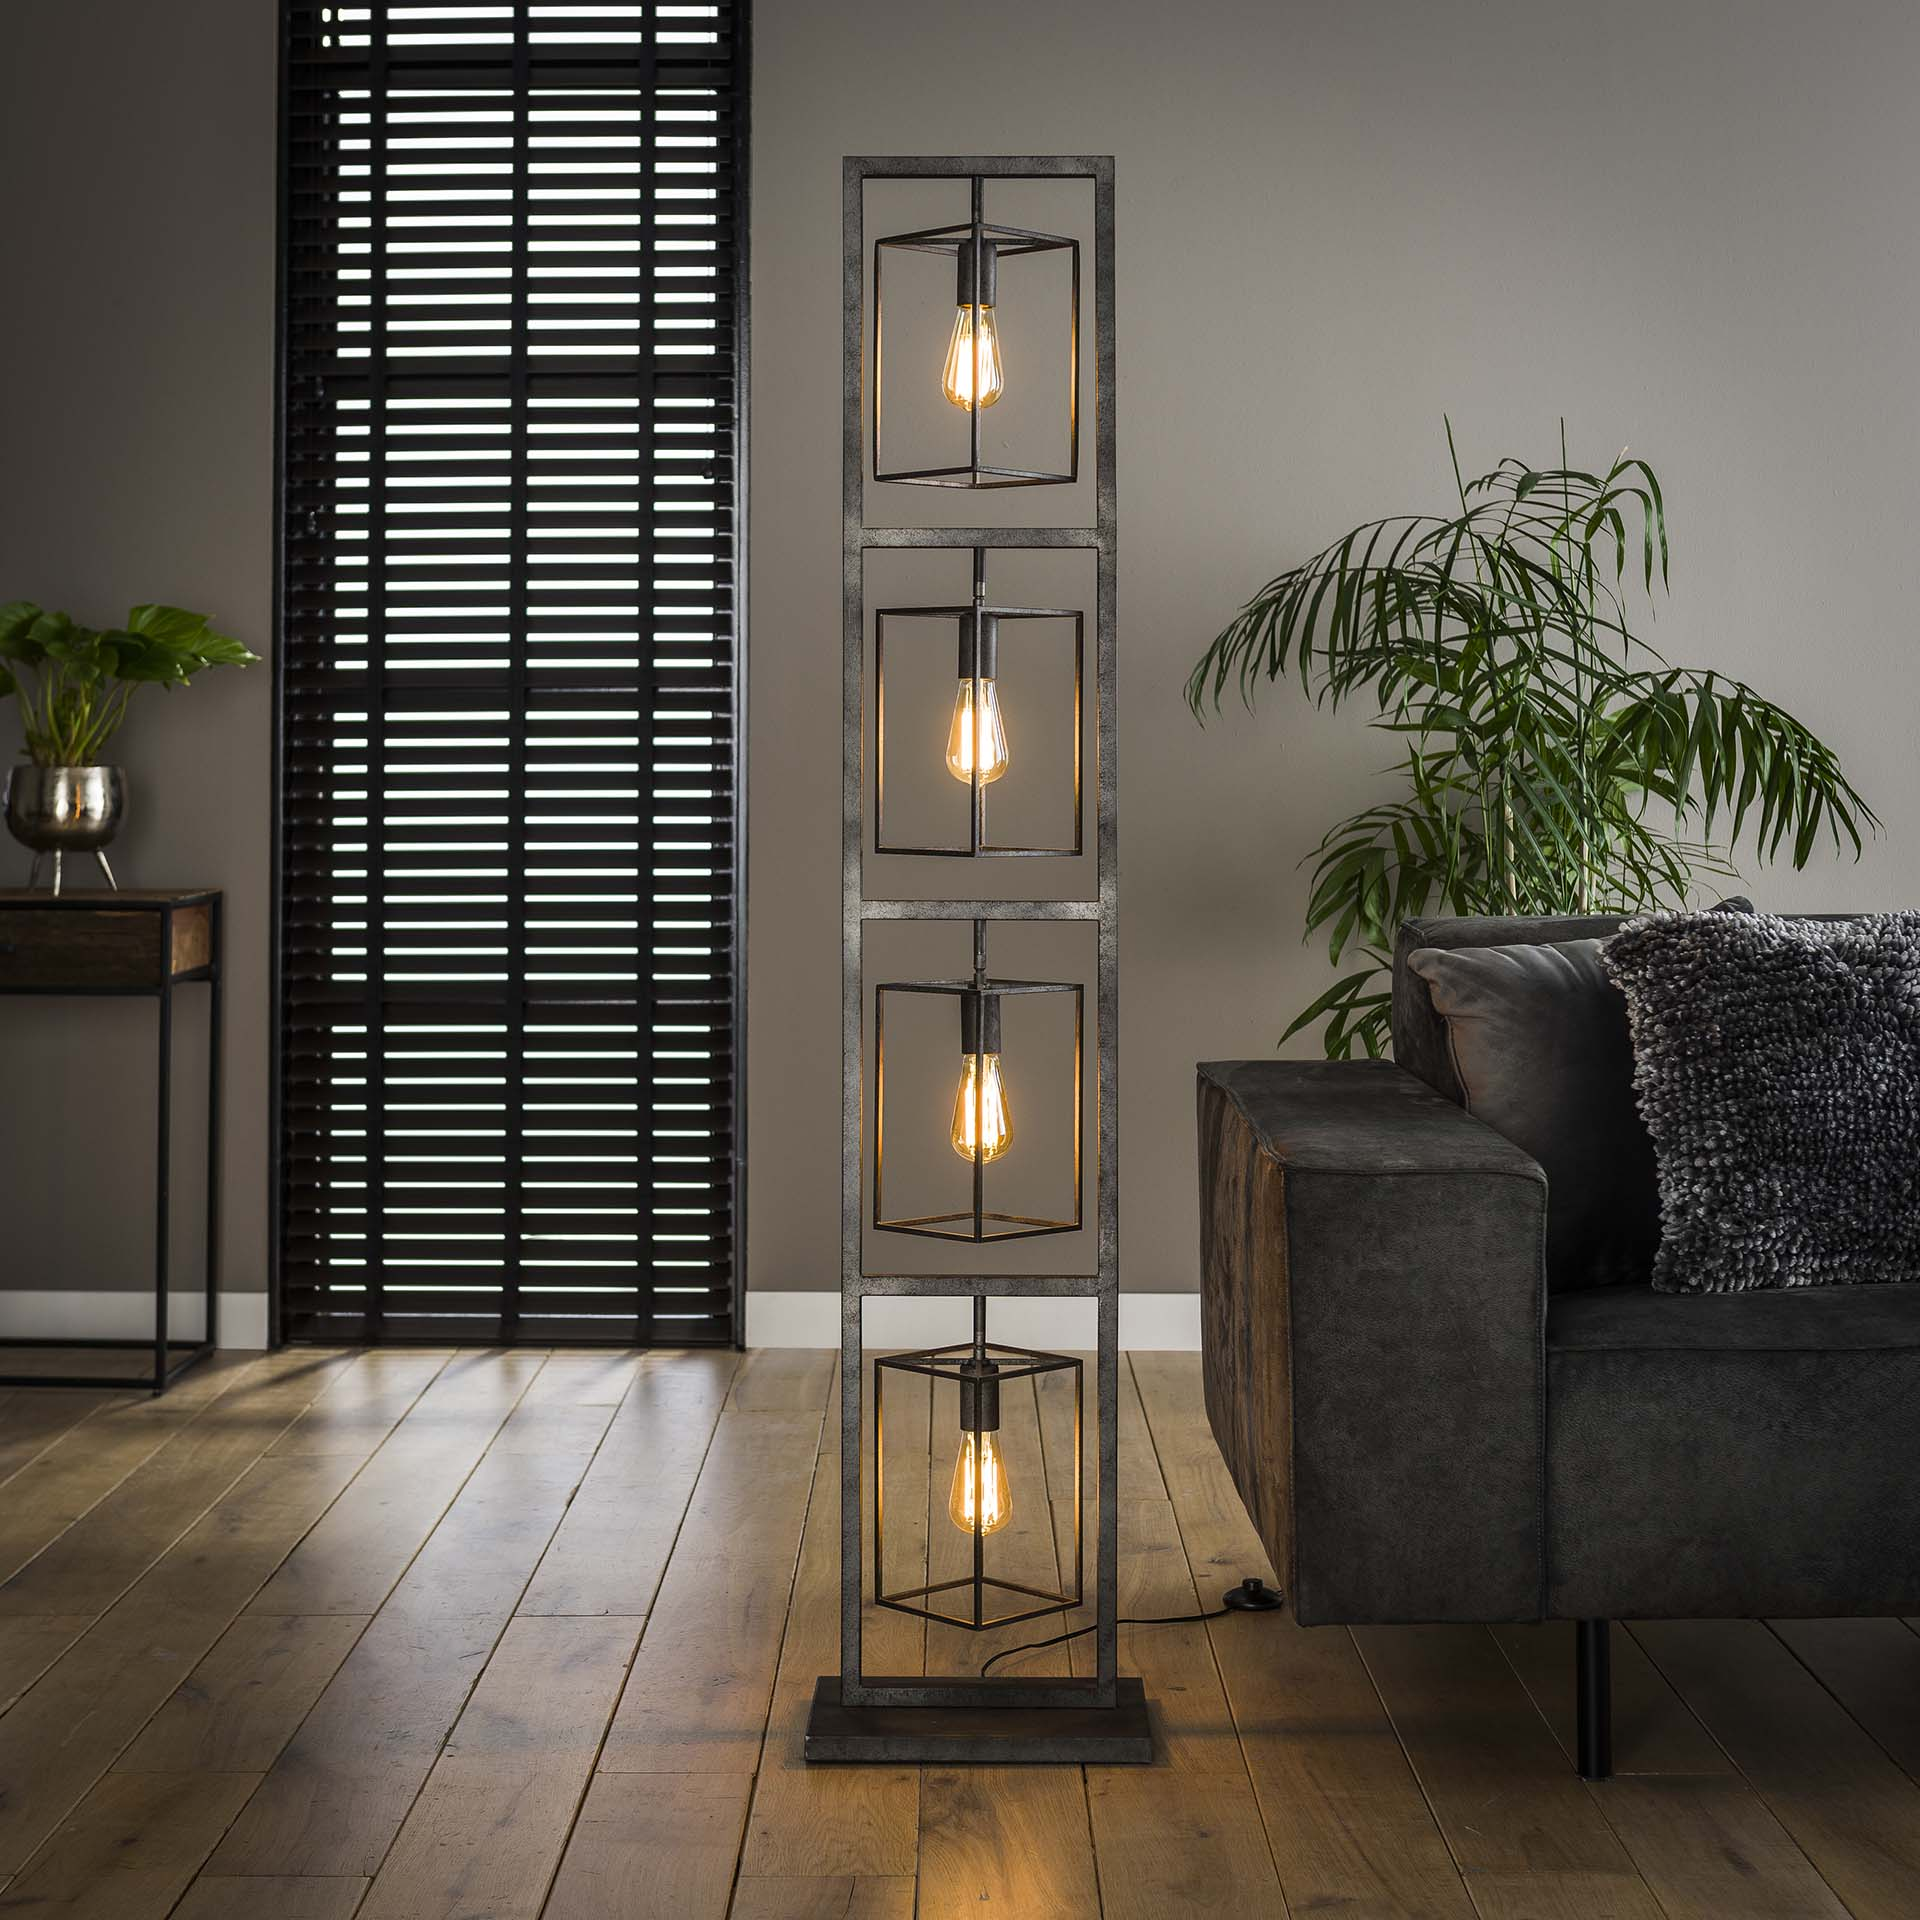 Vloerlamp oud zilver 4x cubic tower